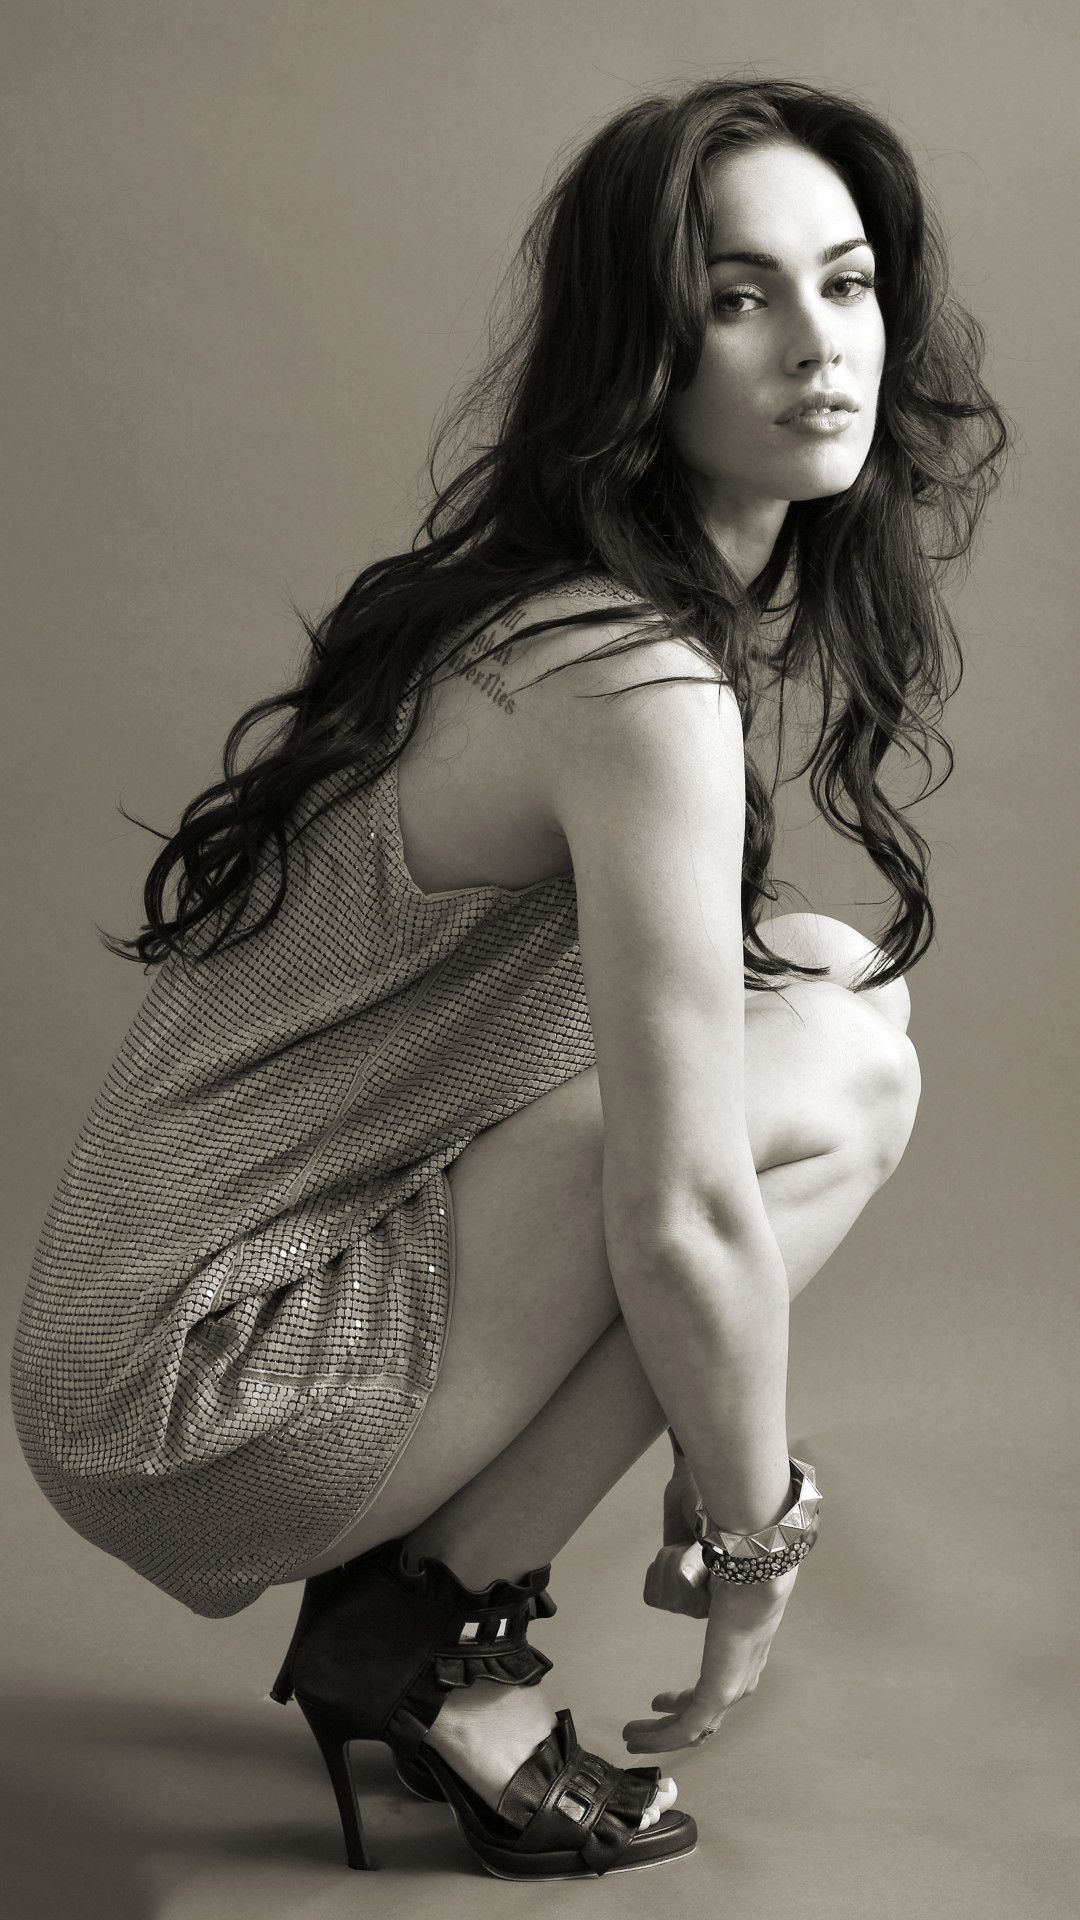 Megan Fox 2019 Monochrome Mobile Wallpaper (iPhone